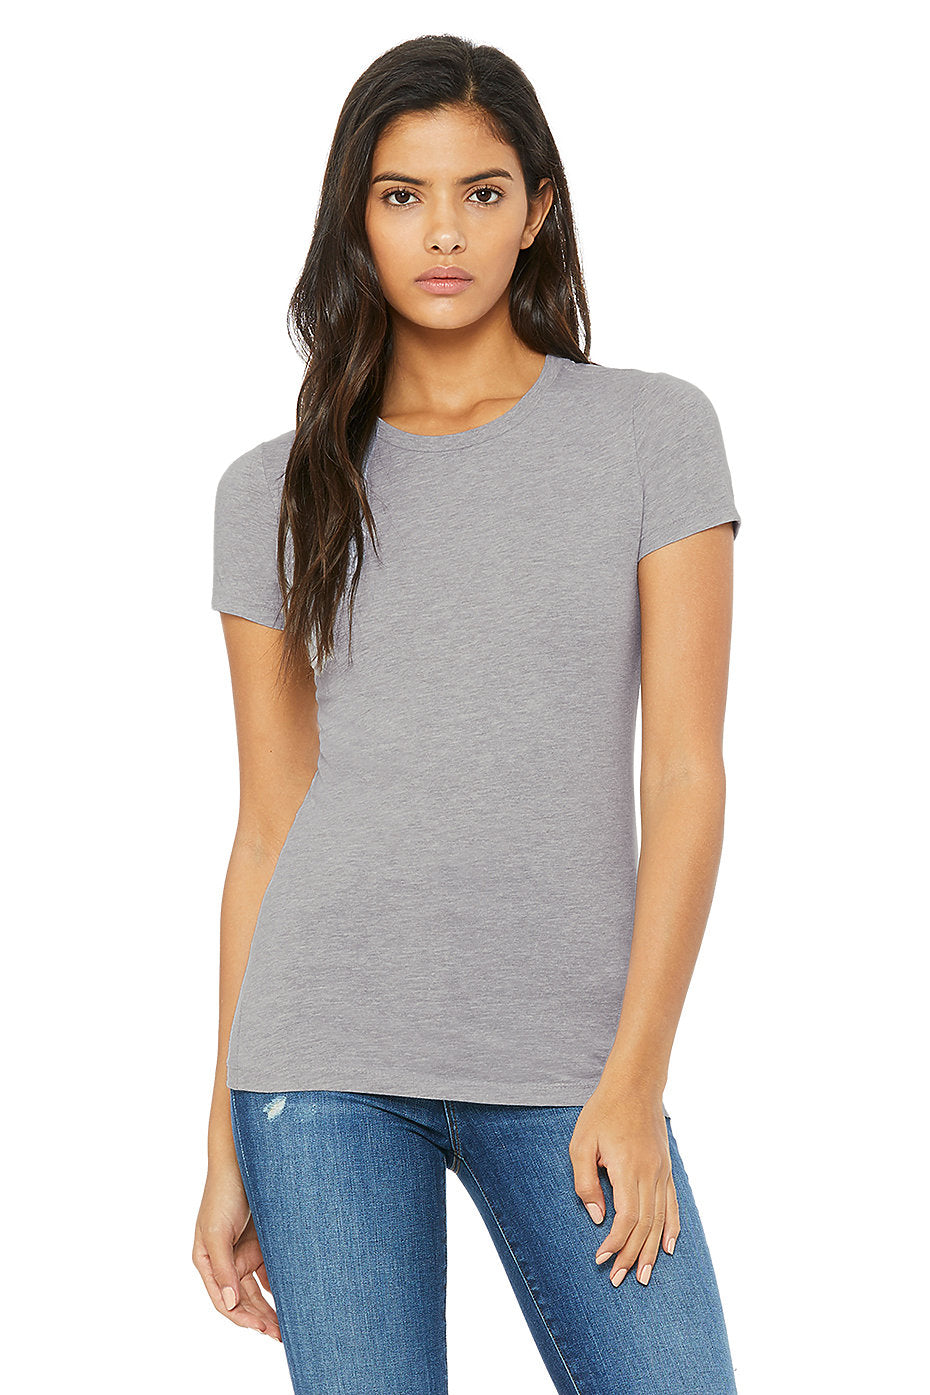 WOMENS 100% Cotton S/S Tee - Heather Grey